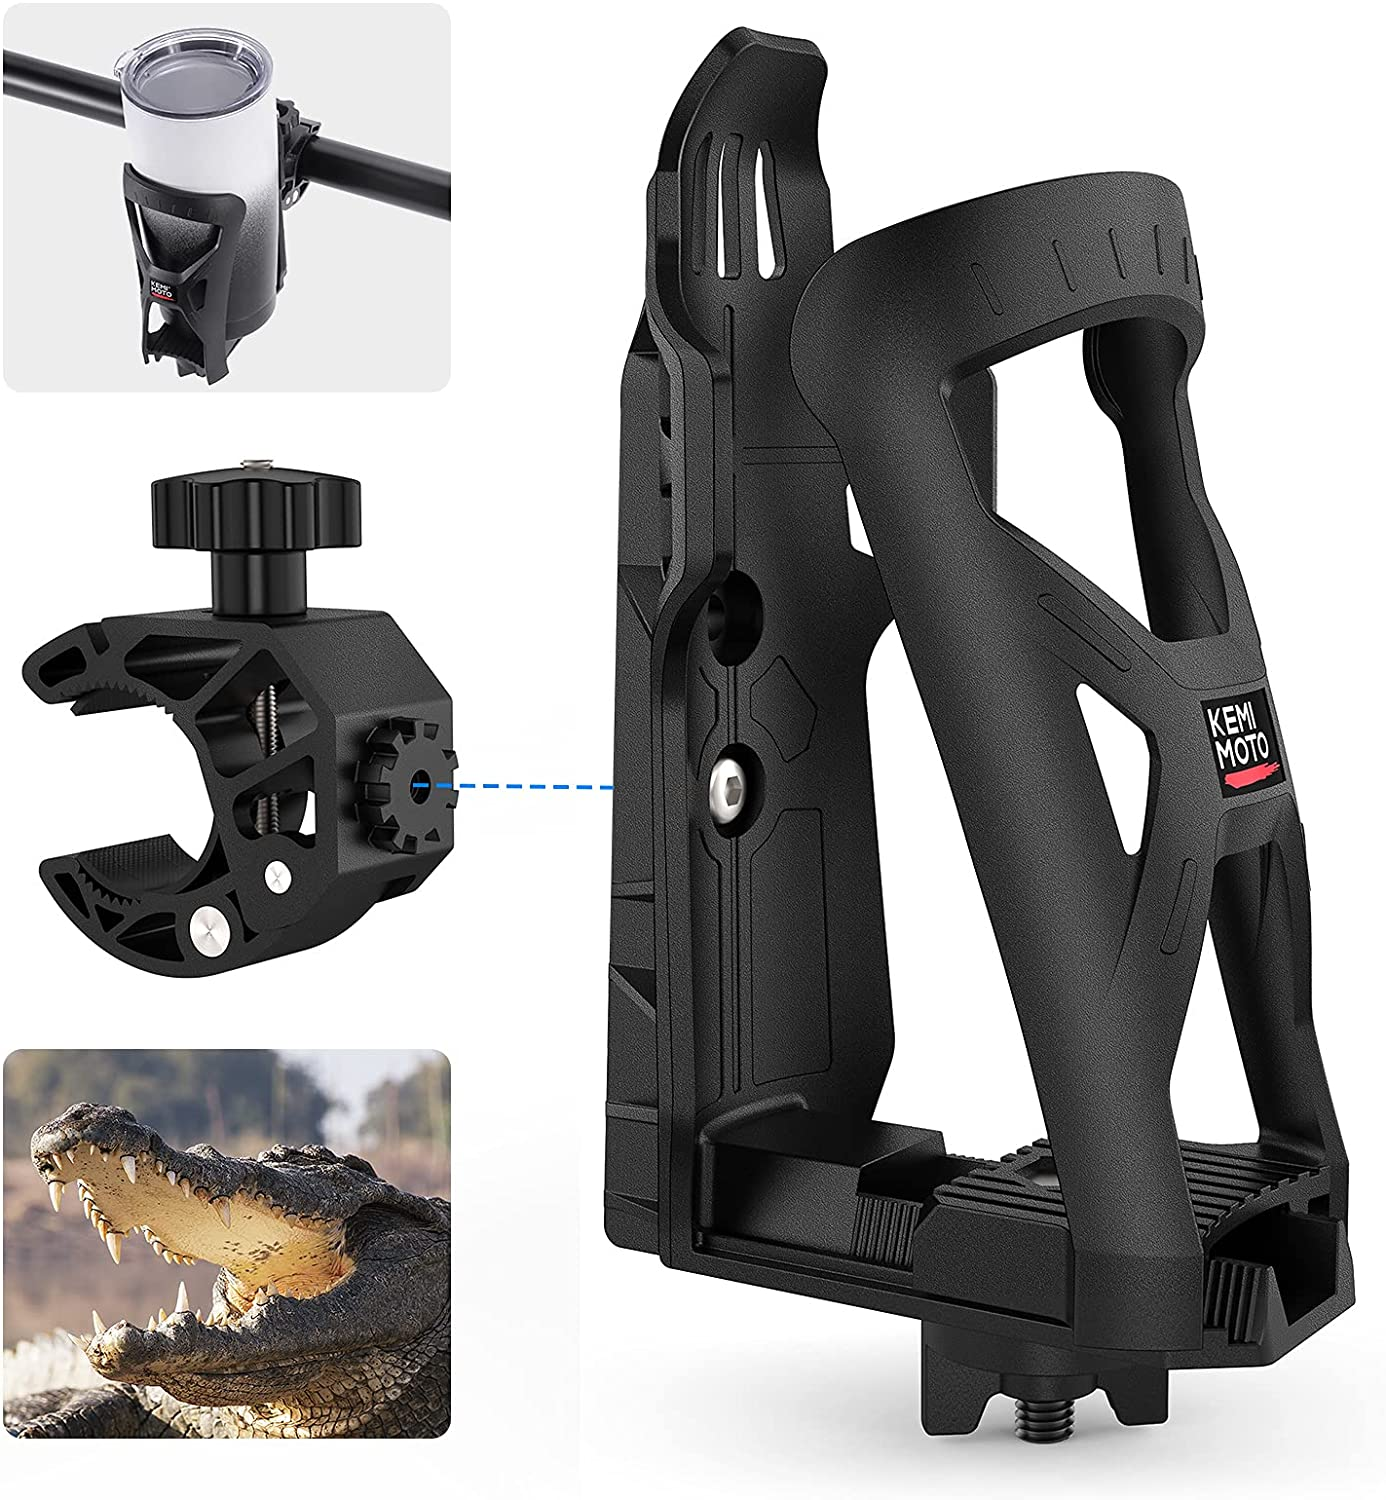 Bike Cup Holder kemimoto for w 360 Motorcycle Rotati Super mart beauty product restock quality top